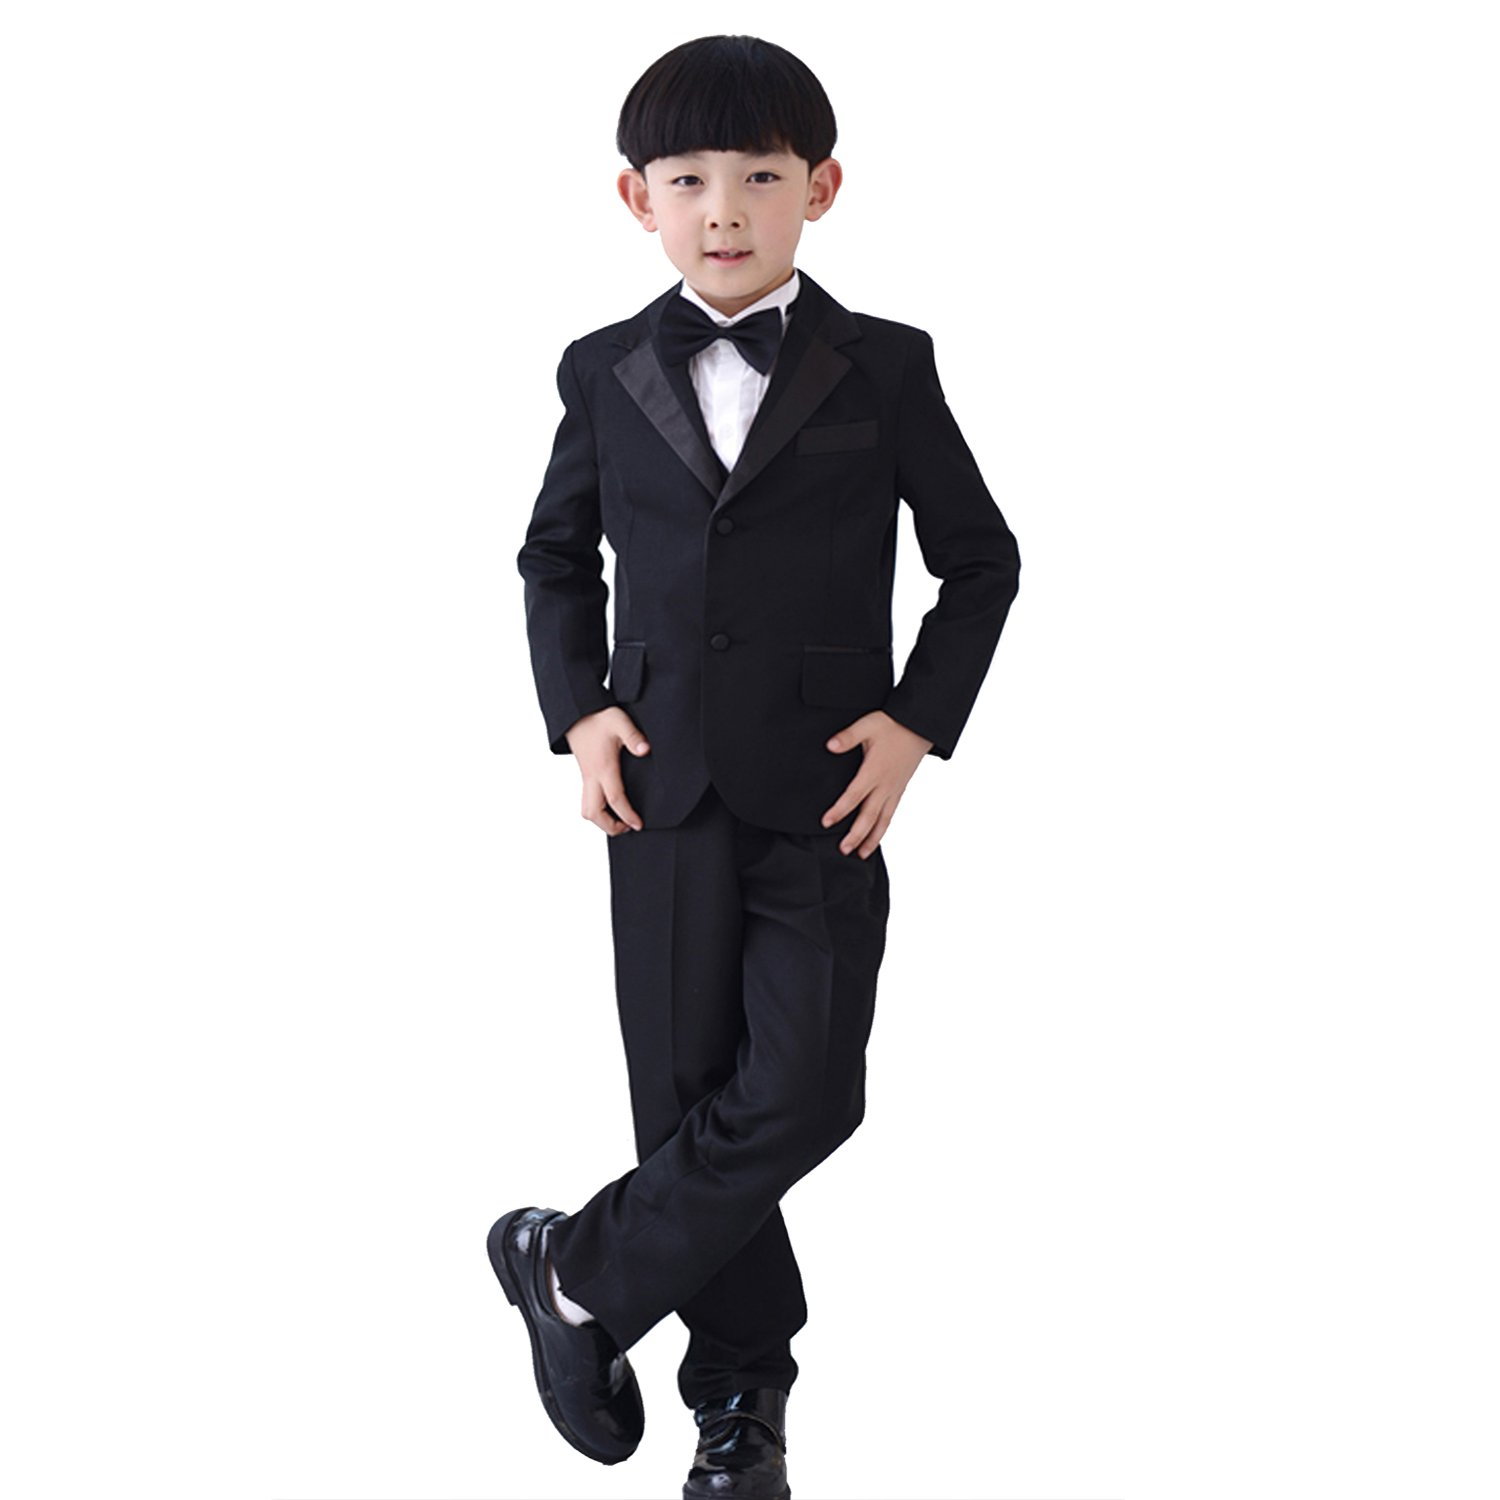 7 Pcs Boys Formal Blazer Children Tuxedo Ring Bearer Wedding Party Suit Black (9-10 Years)